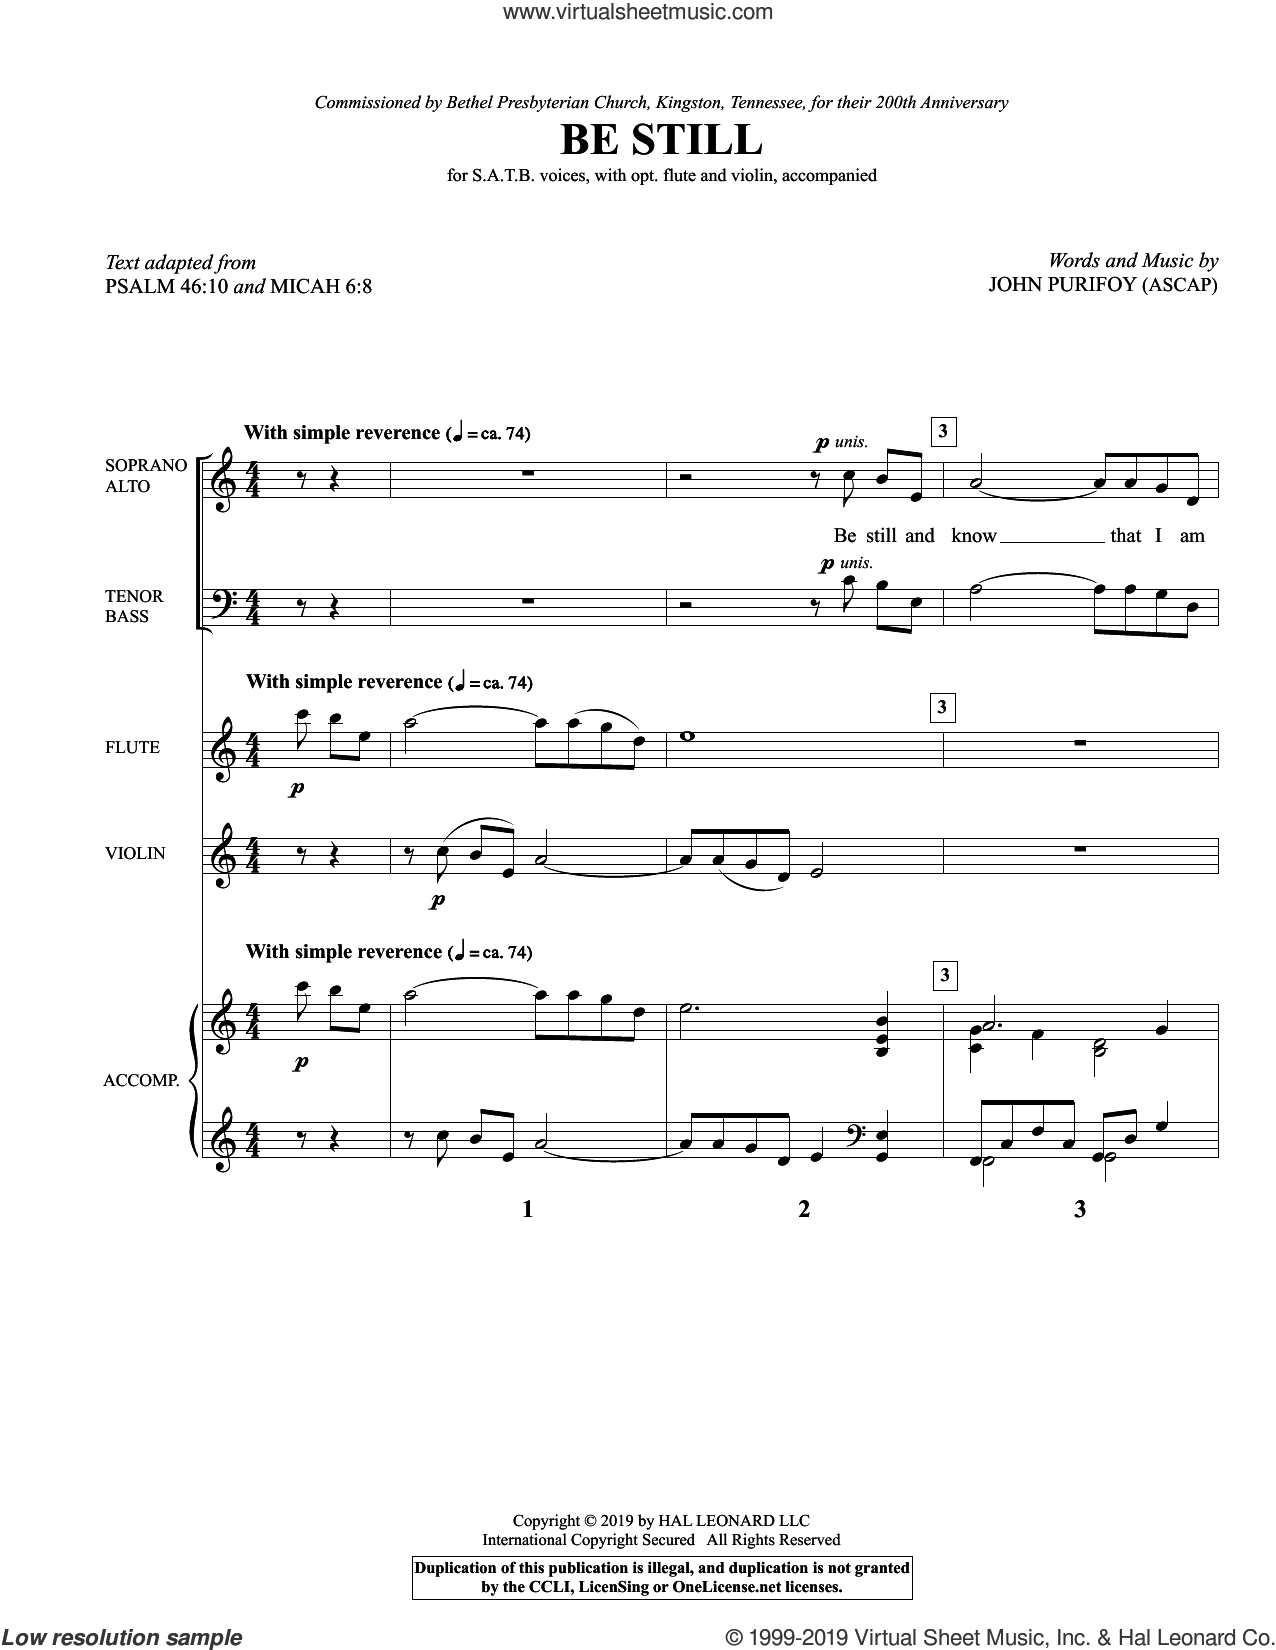 Be Still (COMPLETE) sheet music for orchestra/band by John Purifoy, Micah 6:8 and Psalm 46:10, intermediate skill level